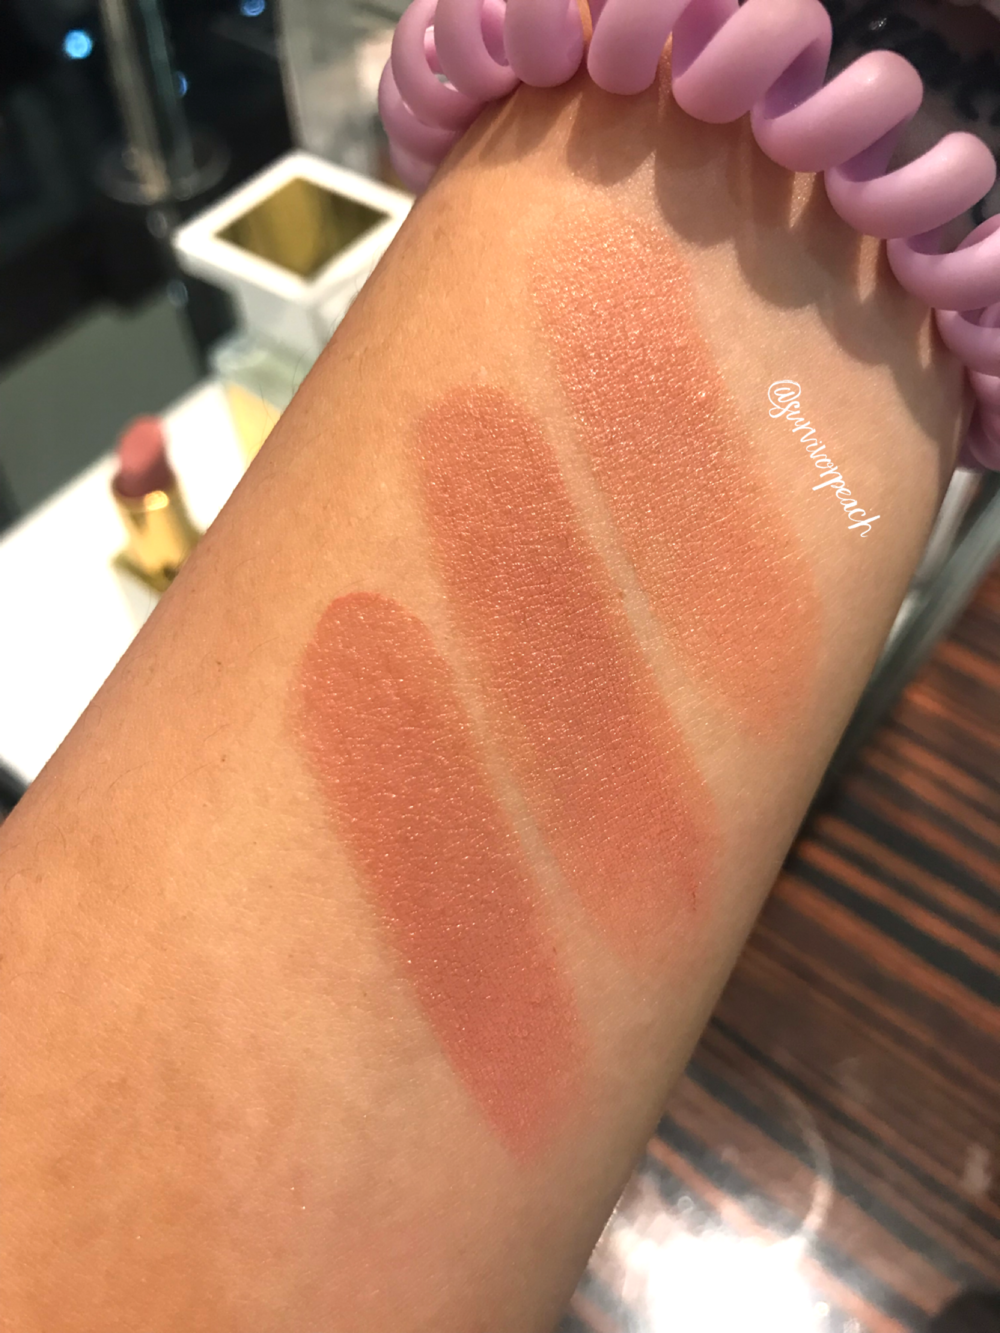 Tom Ford Lipstick in Erogenous, Musk Pure, and Sable Smoke